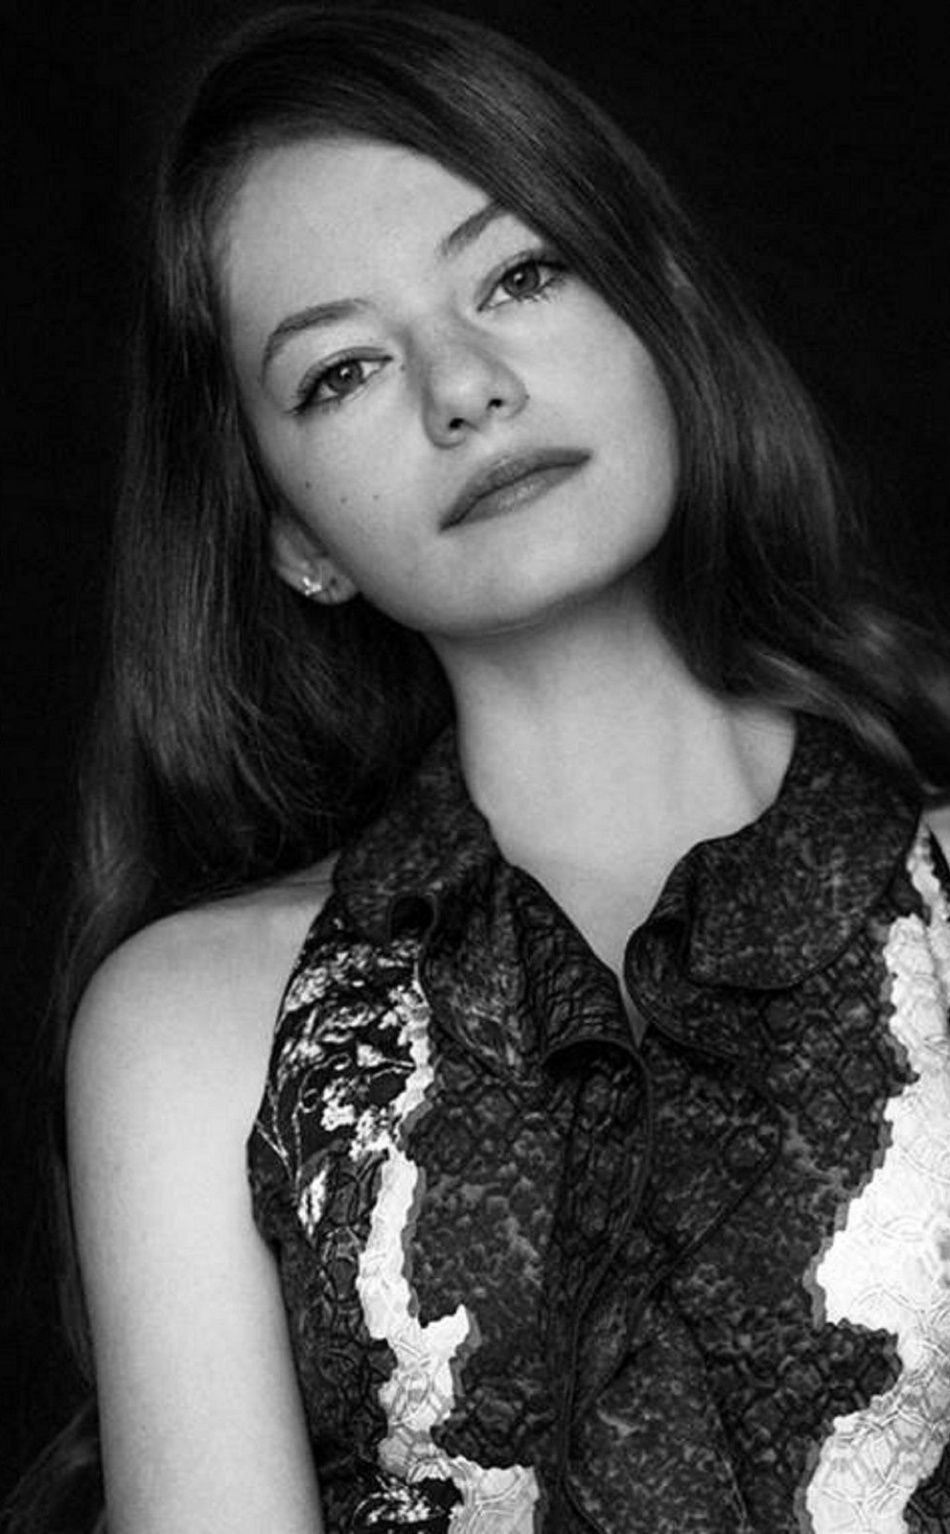 Monochrome pretty Mackenzie Foy 950x1534 wallpaper Celebrity 950x1534